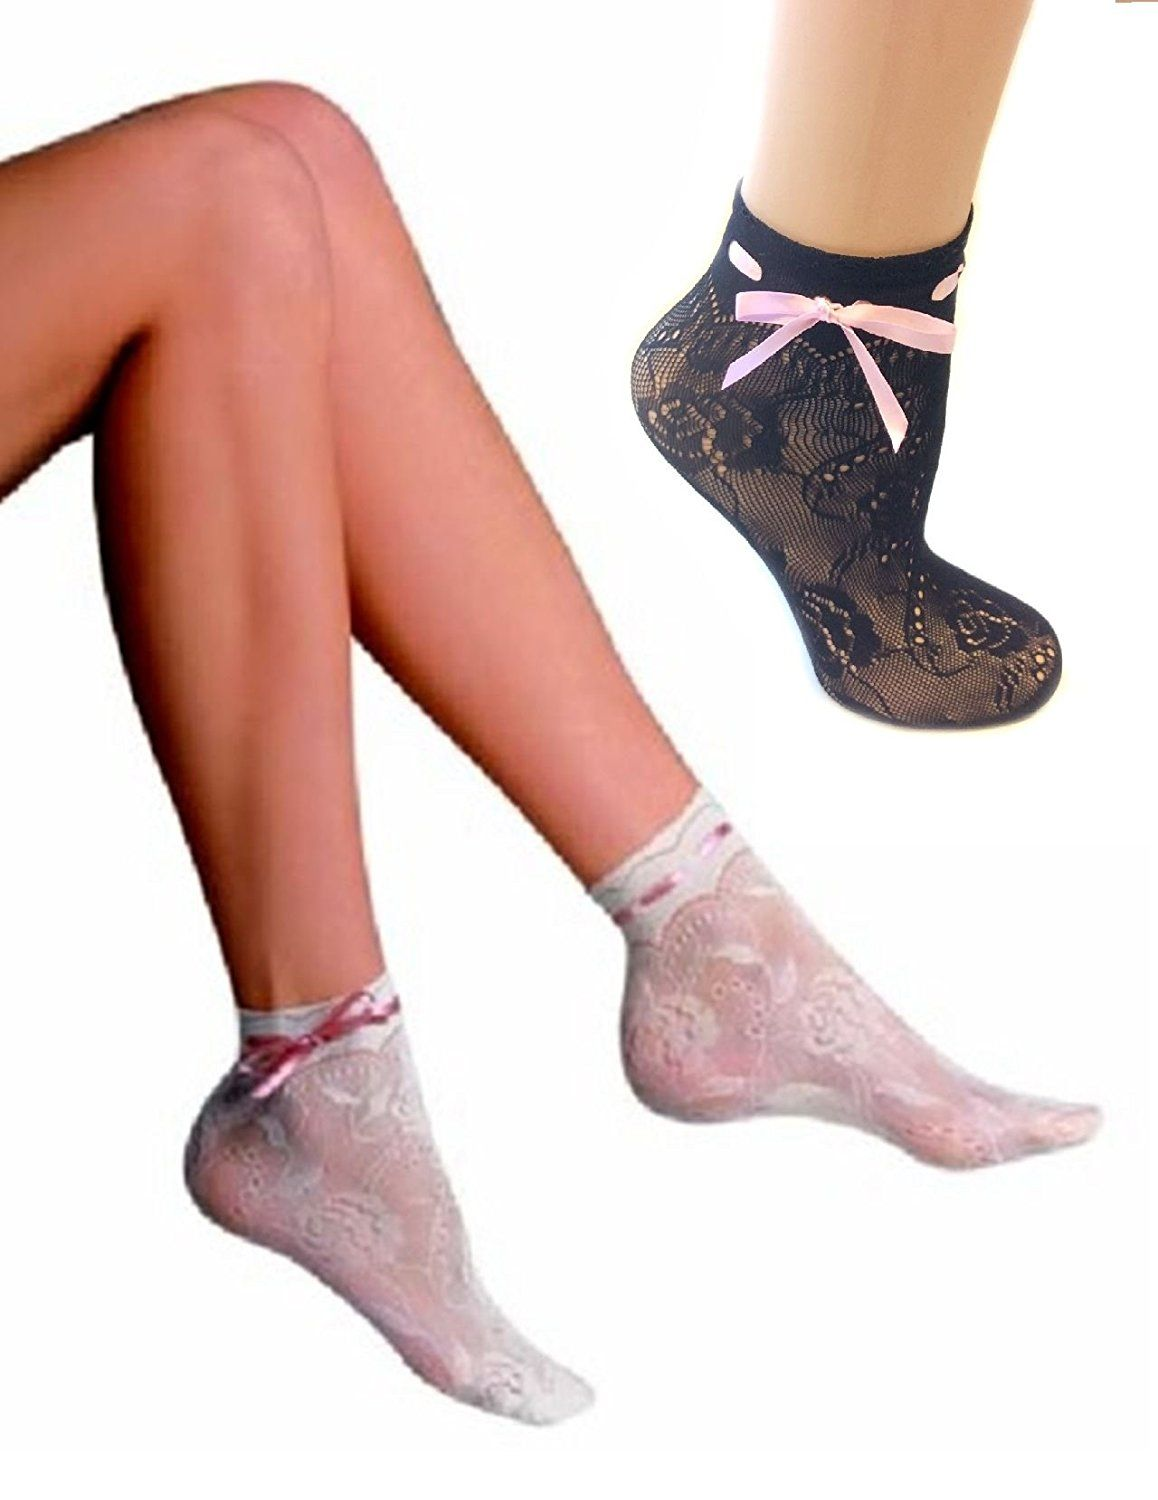 aaa0f8e421c7 Sexy Penti Adriana Microfiber Fishnet Ankle Highs Black with Pink Ribbon  Lace at Amazon Women's Clothing store: